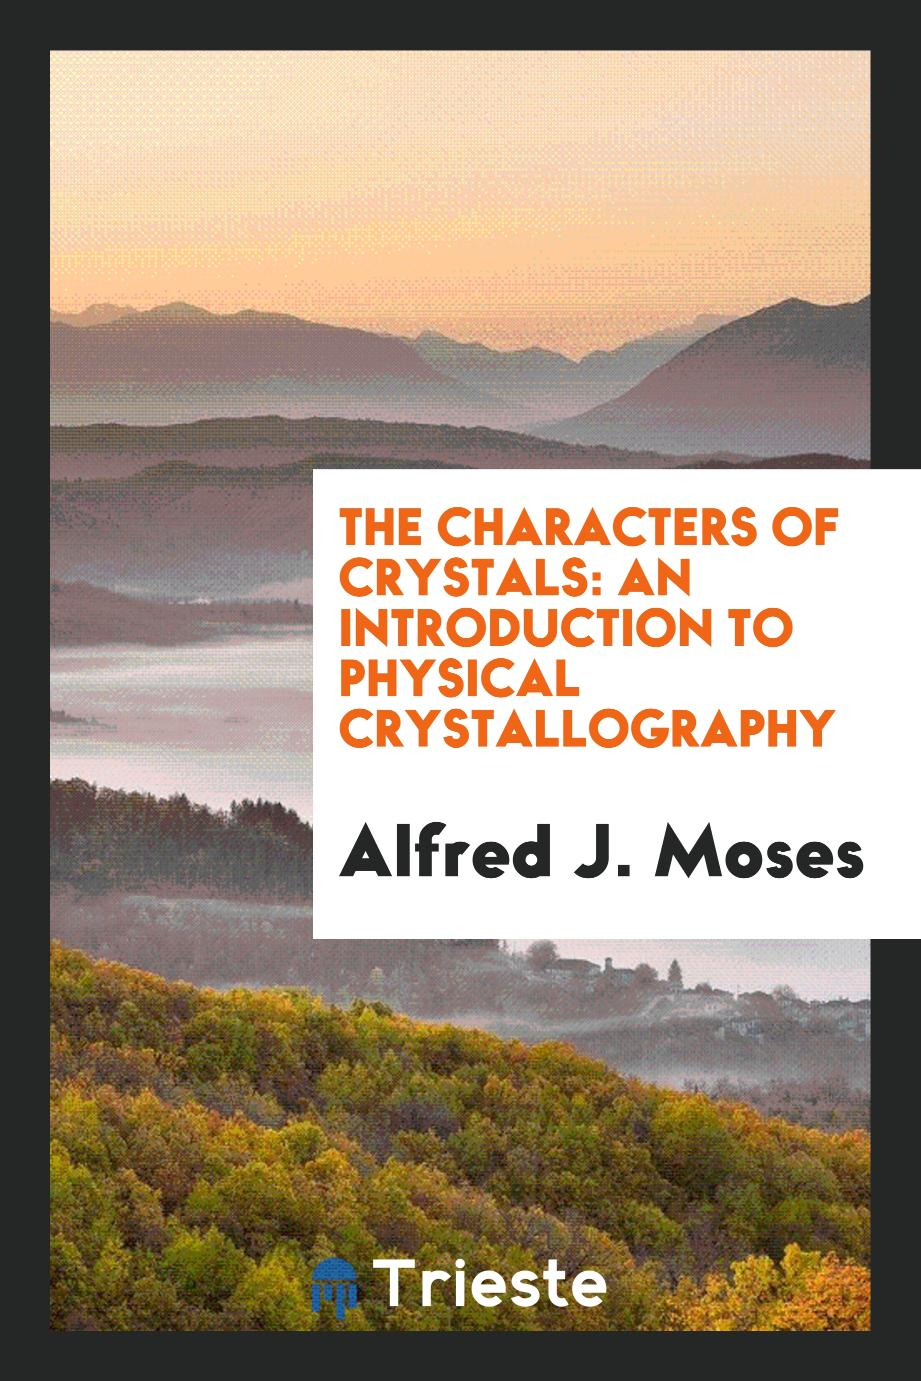 The characters of crystals: an introduction to physical crystallography